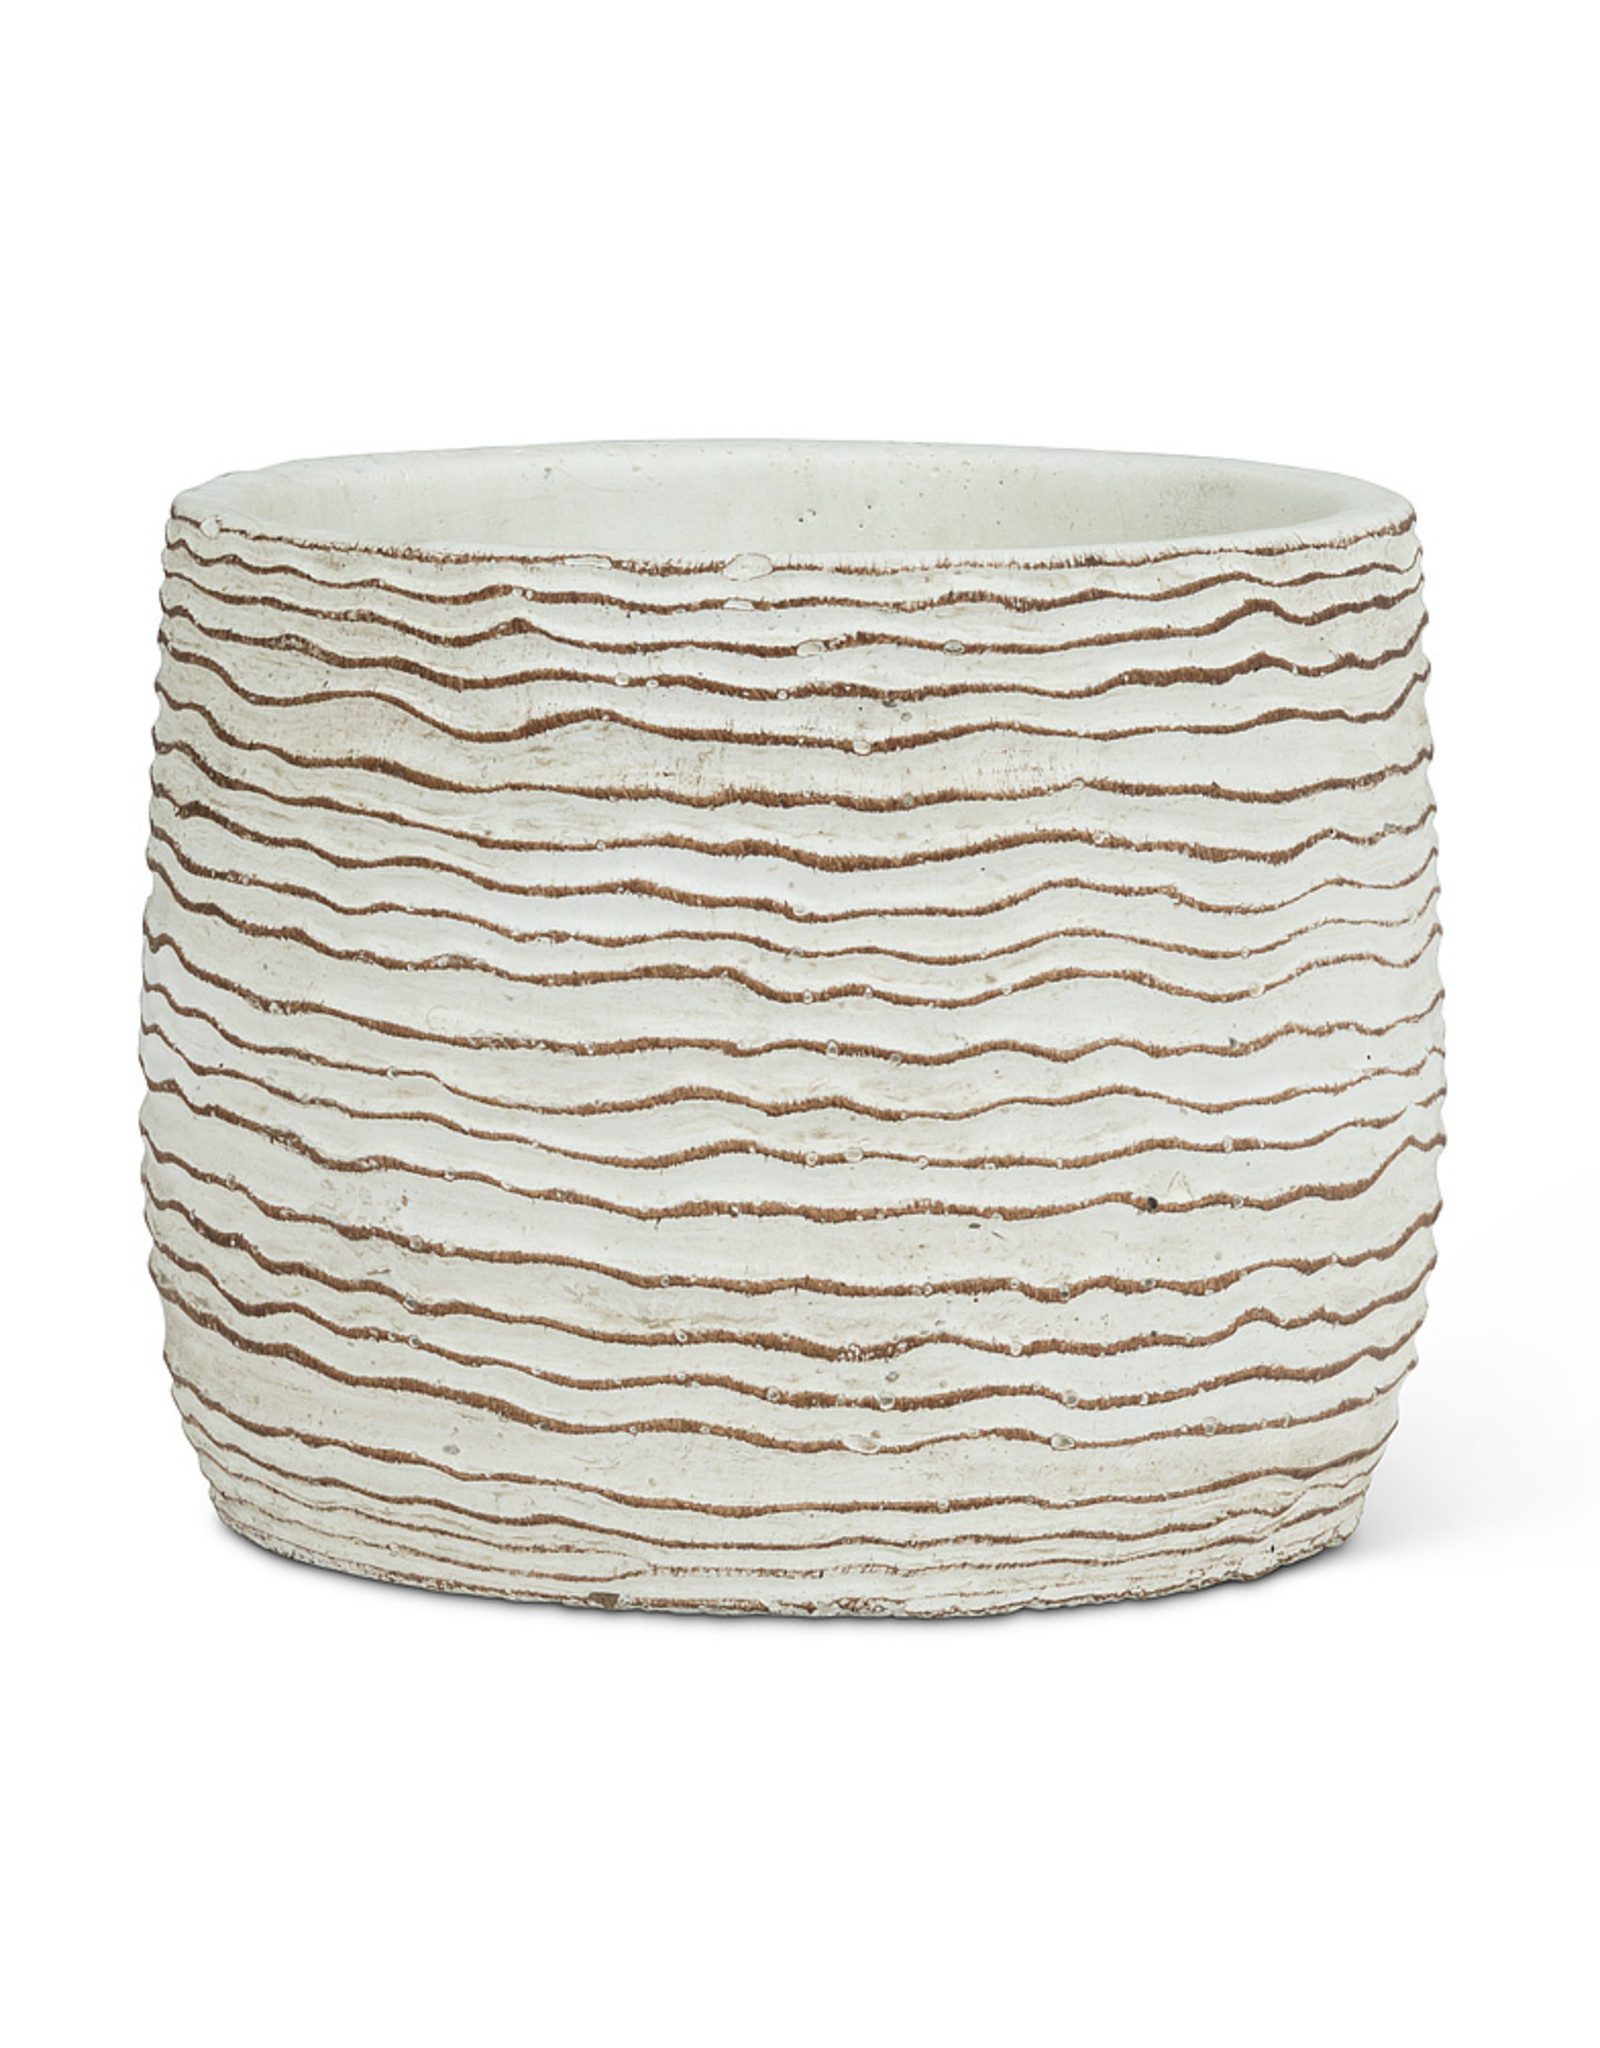 Small Wavy Ripple Planter